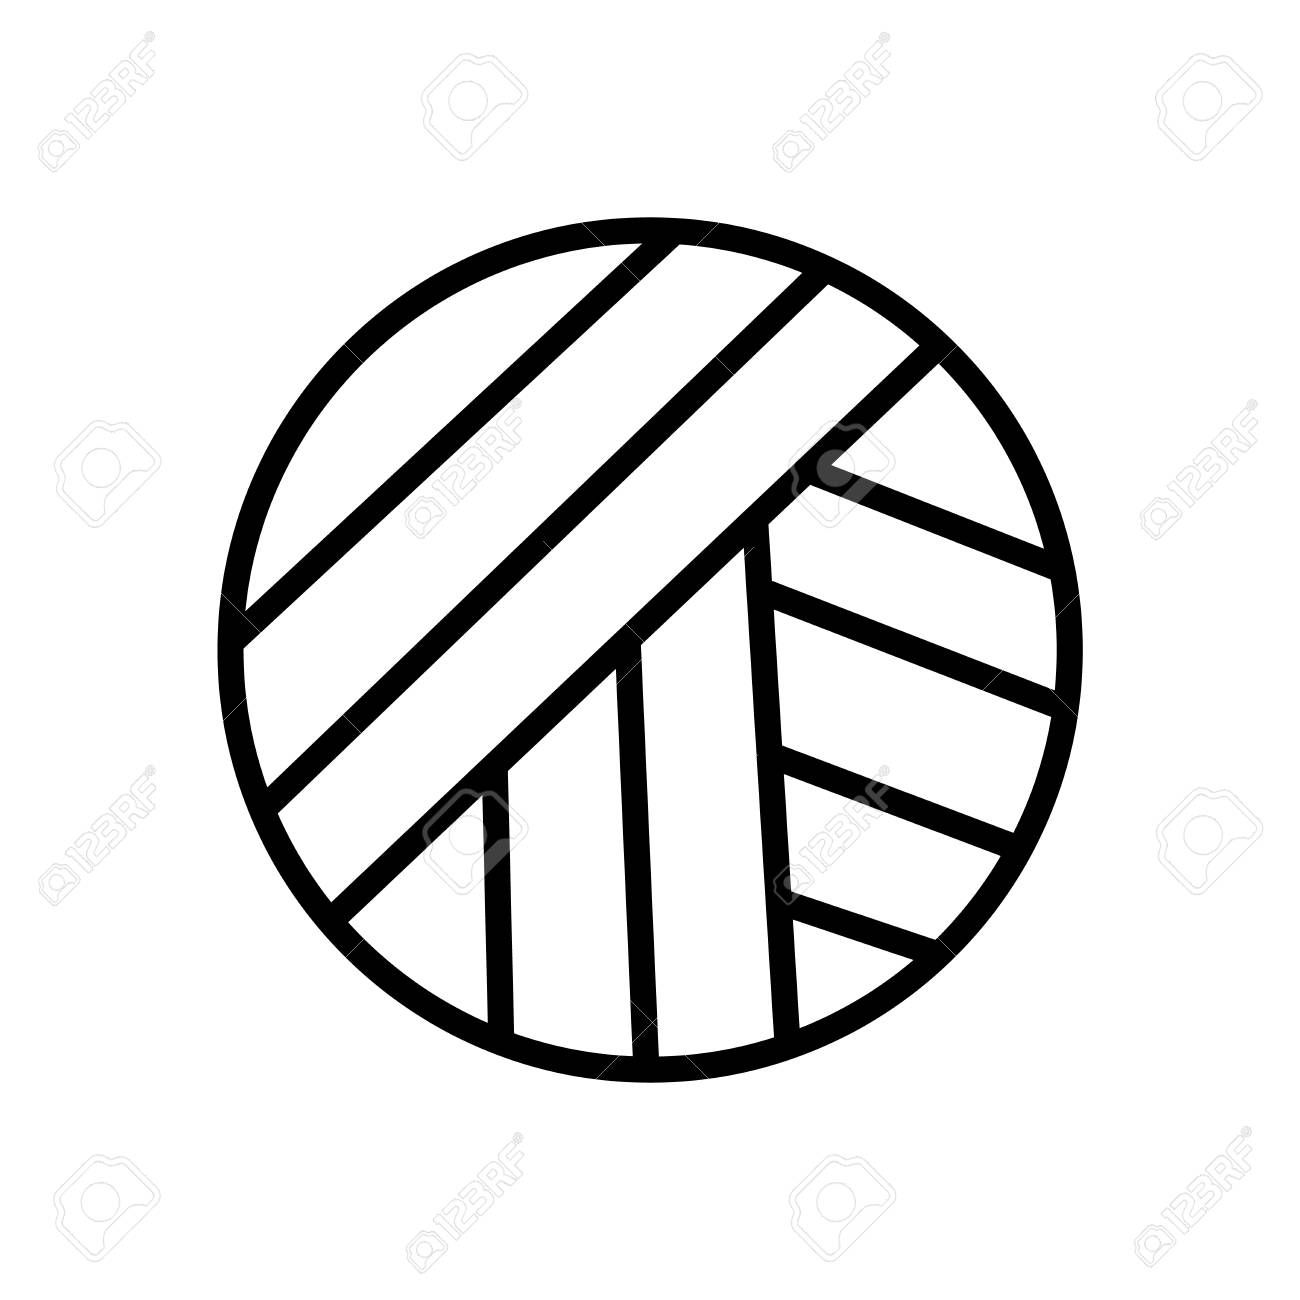 Volleyball Ball Icon Vector Isolated On White Background Volleyball Ball Transparent Sign L In 2020 Social Media Marketing Business Design Elements White Background